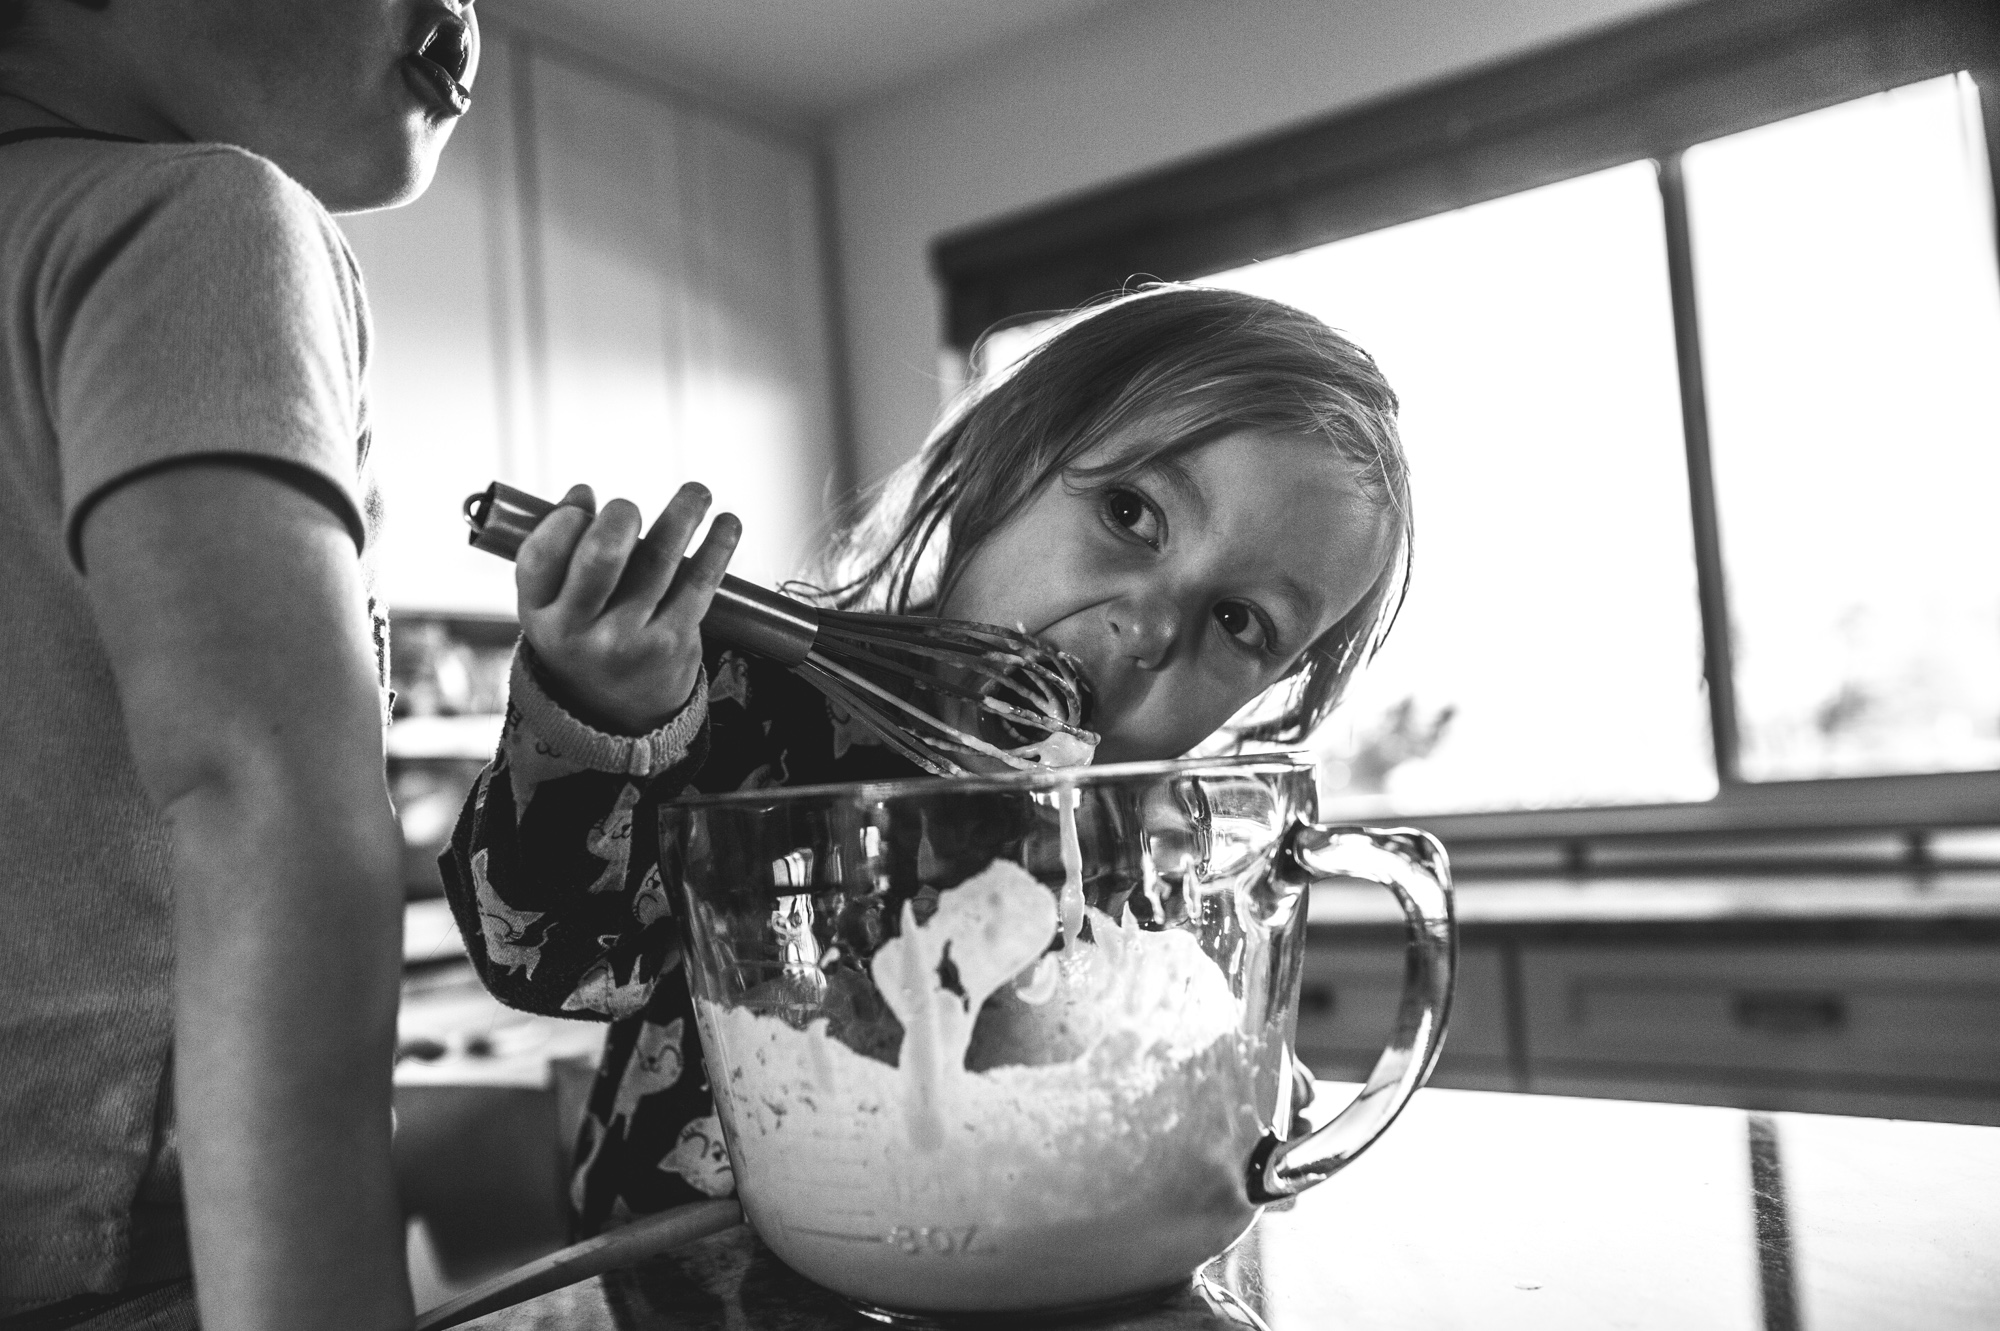 Little girl eating pancake batter off of a whisk out of the bowl, black and white, Denver, Colorado